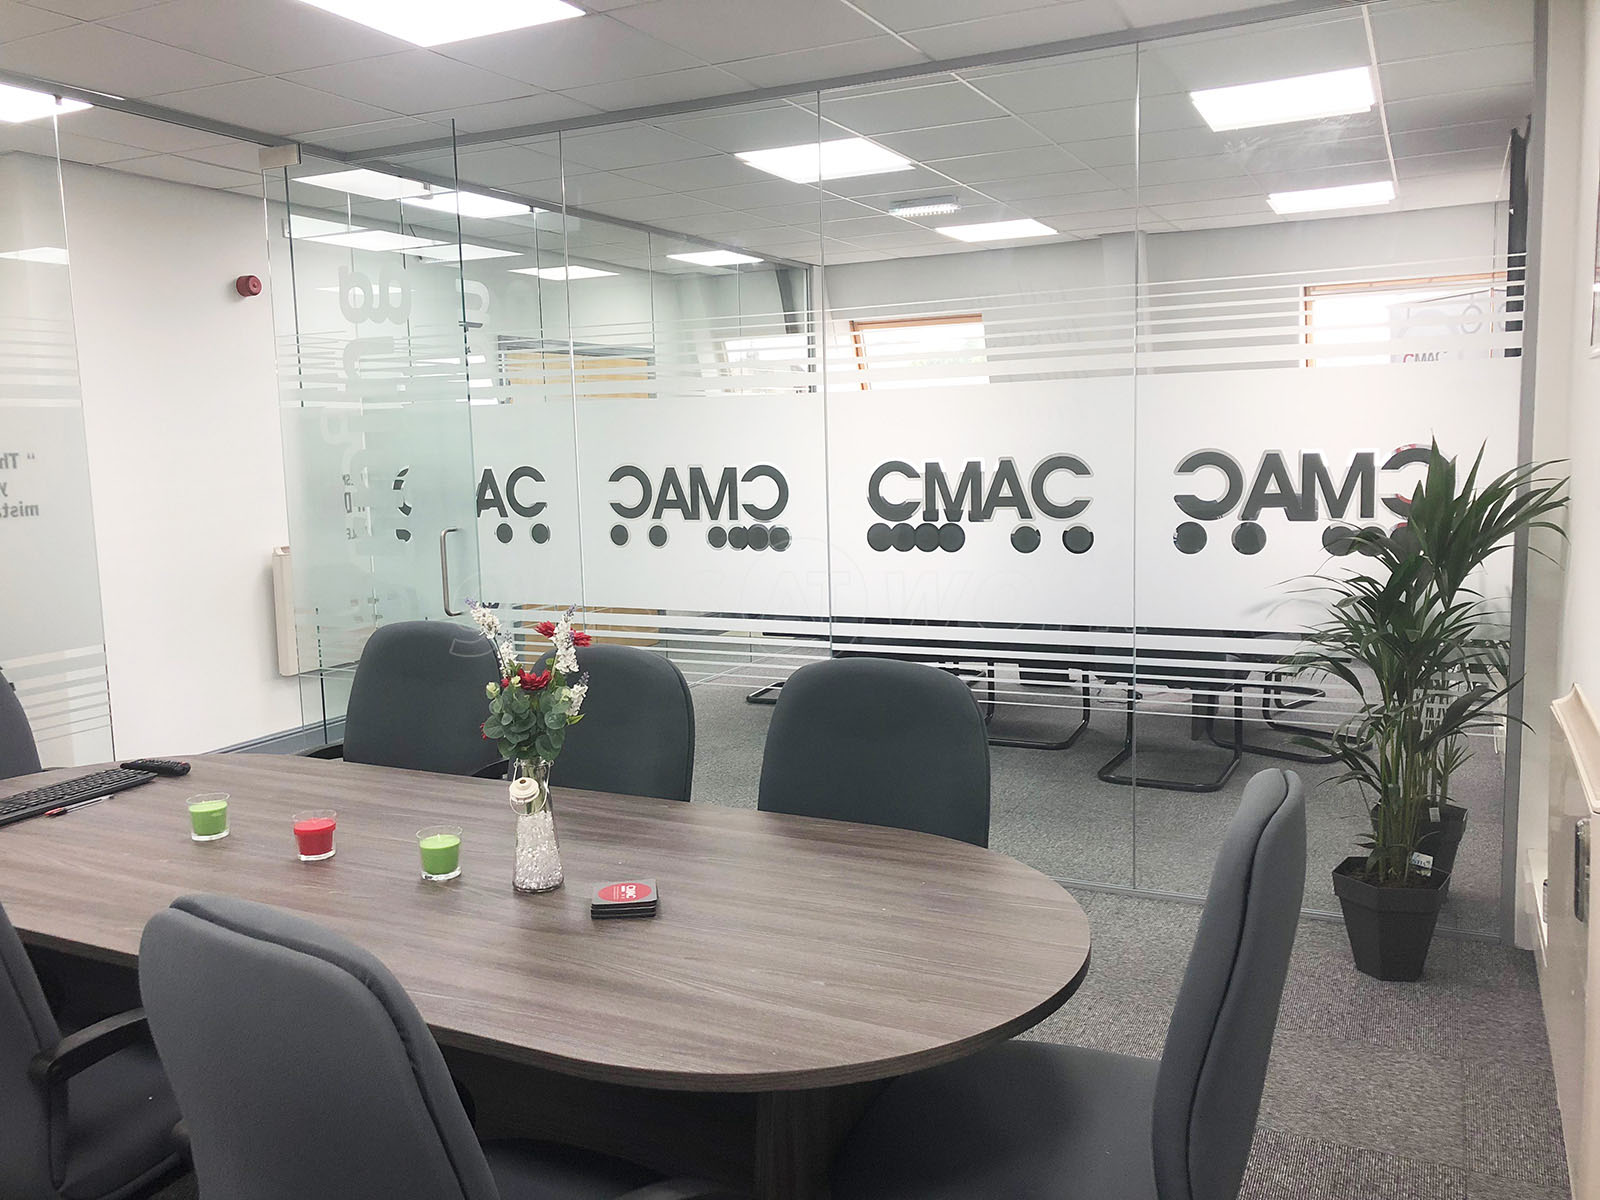 Cmac Partnership Ltd (Accrington, Lancashire) Multiple Glazed Office Rooms